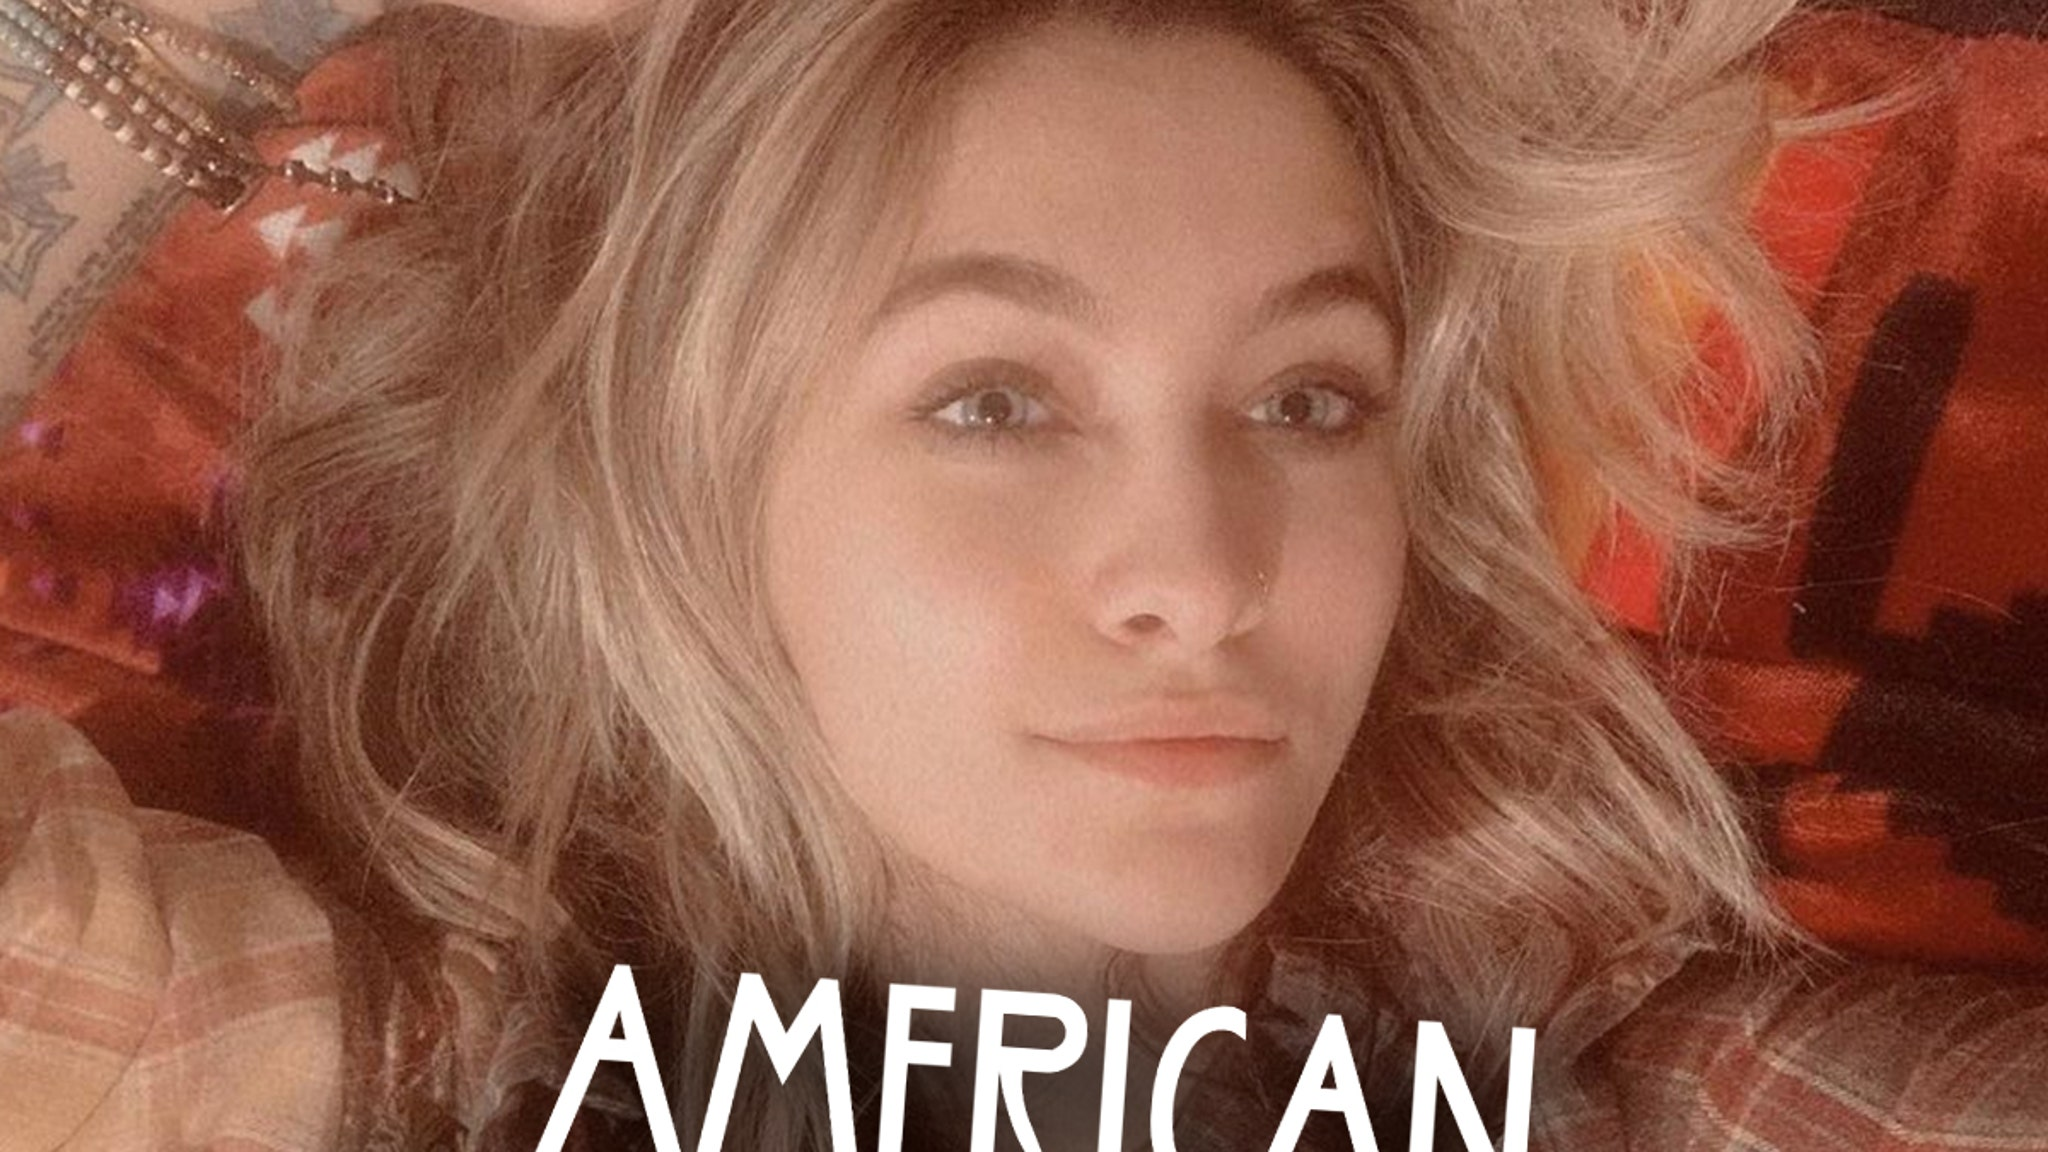 Paris Jackson appears in the next 'American Horror Story'